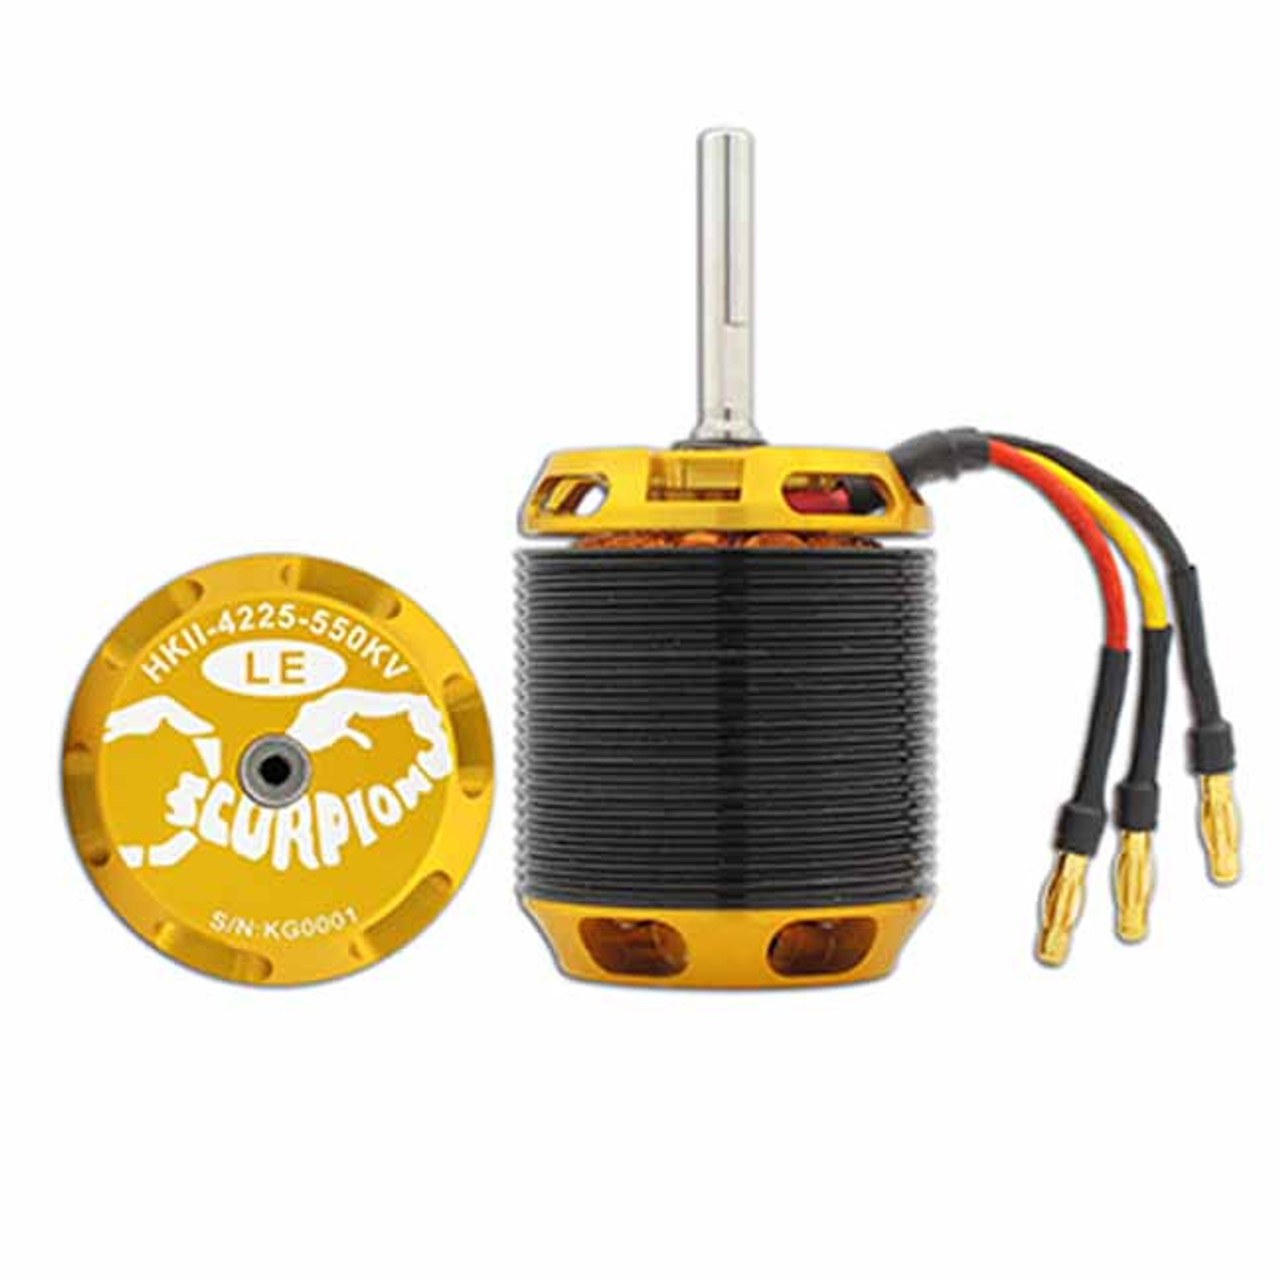 600 Class Scorpion HKII-4225-550Kv  Limited Edition Brushless Helicopter Motor